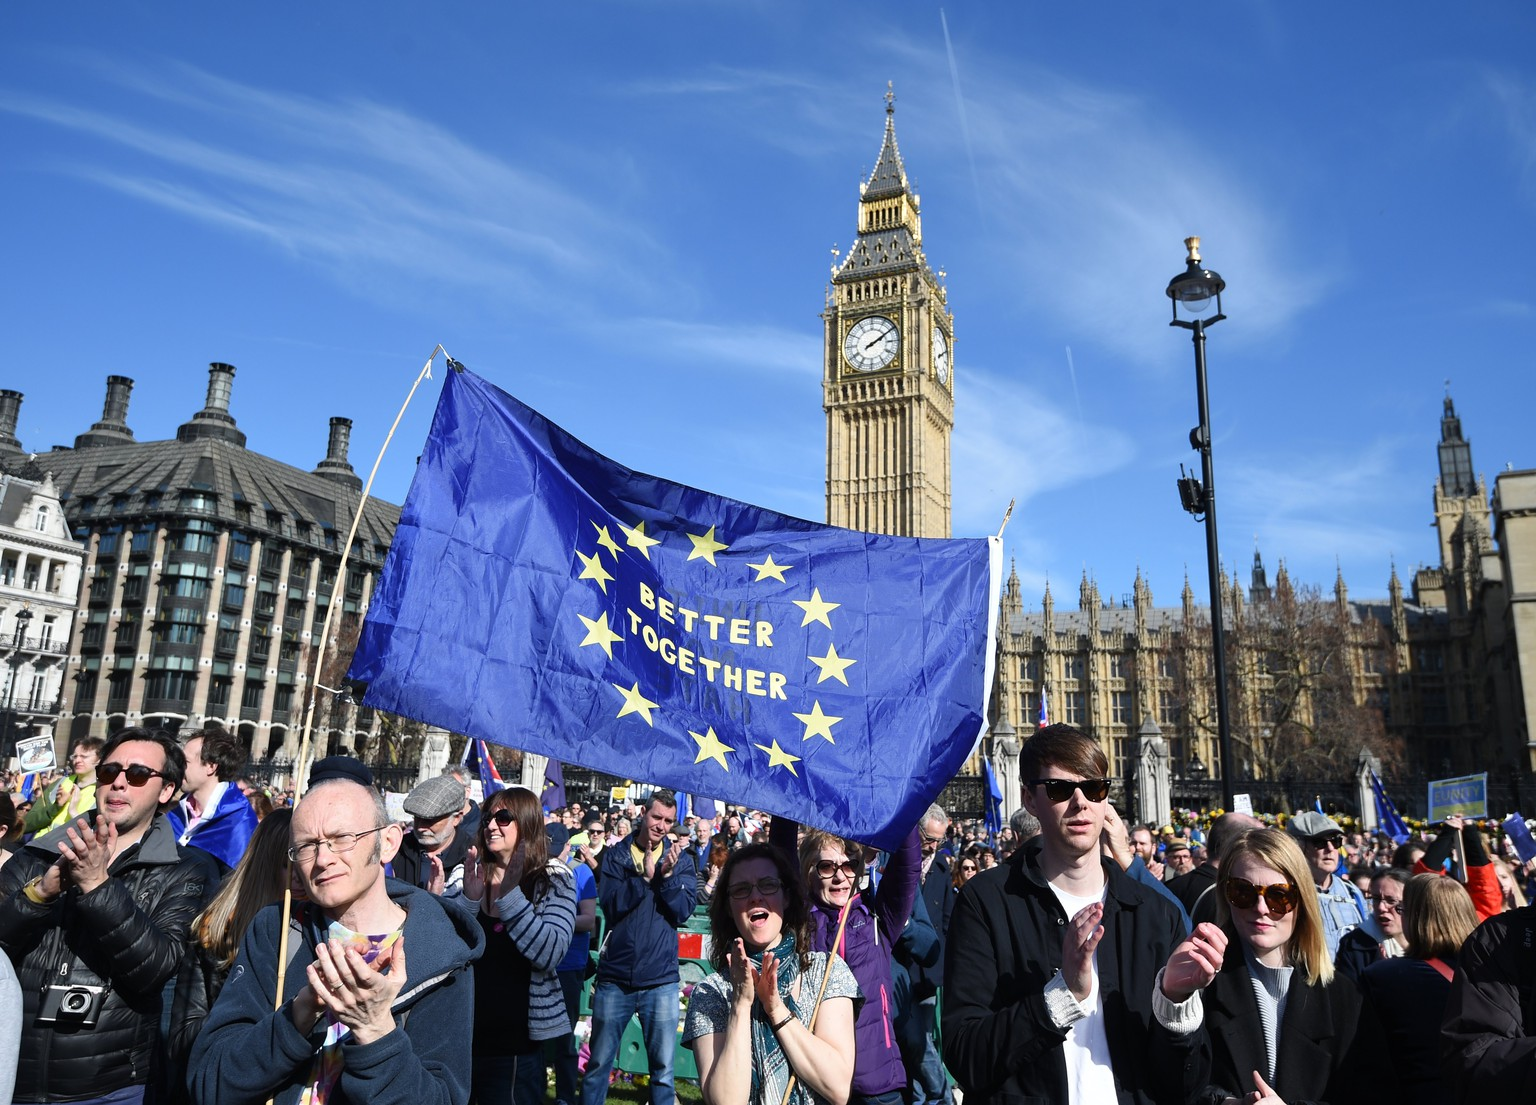 epa05870082 Pro EU supporters attend the 'Unite for Europe' rally in London, Britain, 25 March 2017. Demonstrators called for the UK to stay in the EU. Prime Minister Theresa May is set to trigger Article 50 on 29 March.  EPA/FACUNDO ARRIZABALAGA